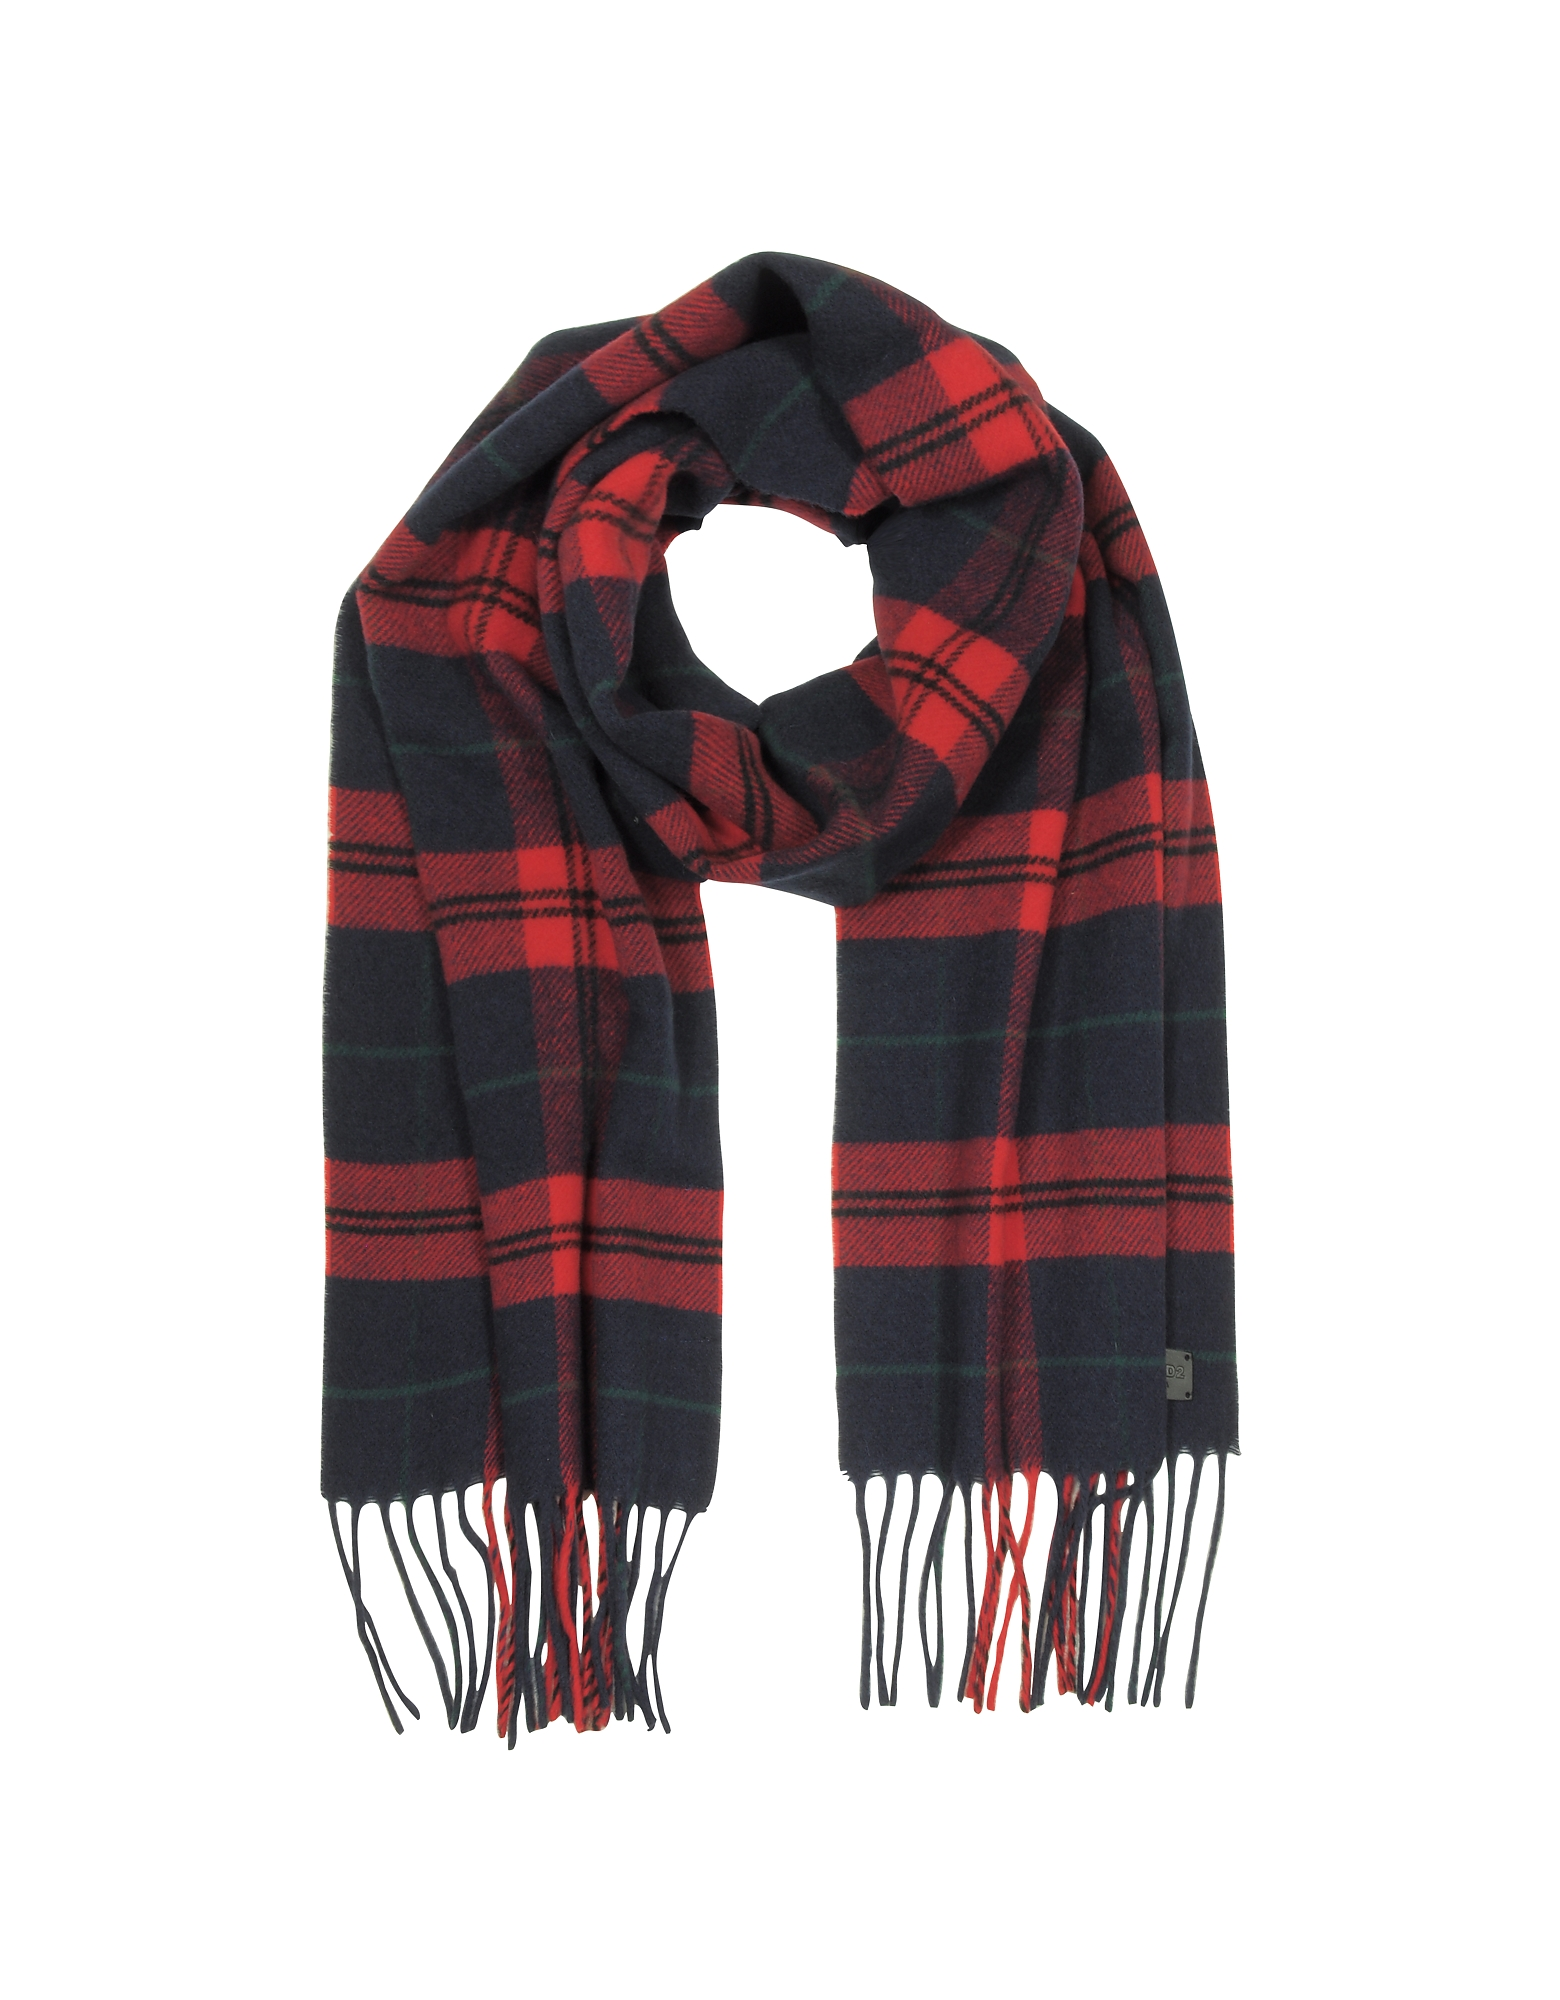 Red/Navy Blue Checked Wool and Cashmere Men's Scarf w/Fringes от Forzieri.com INT